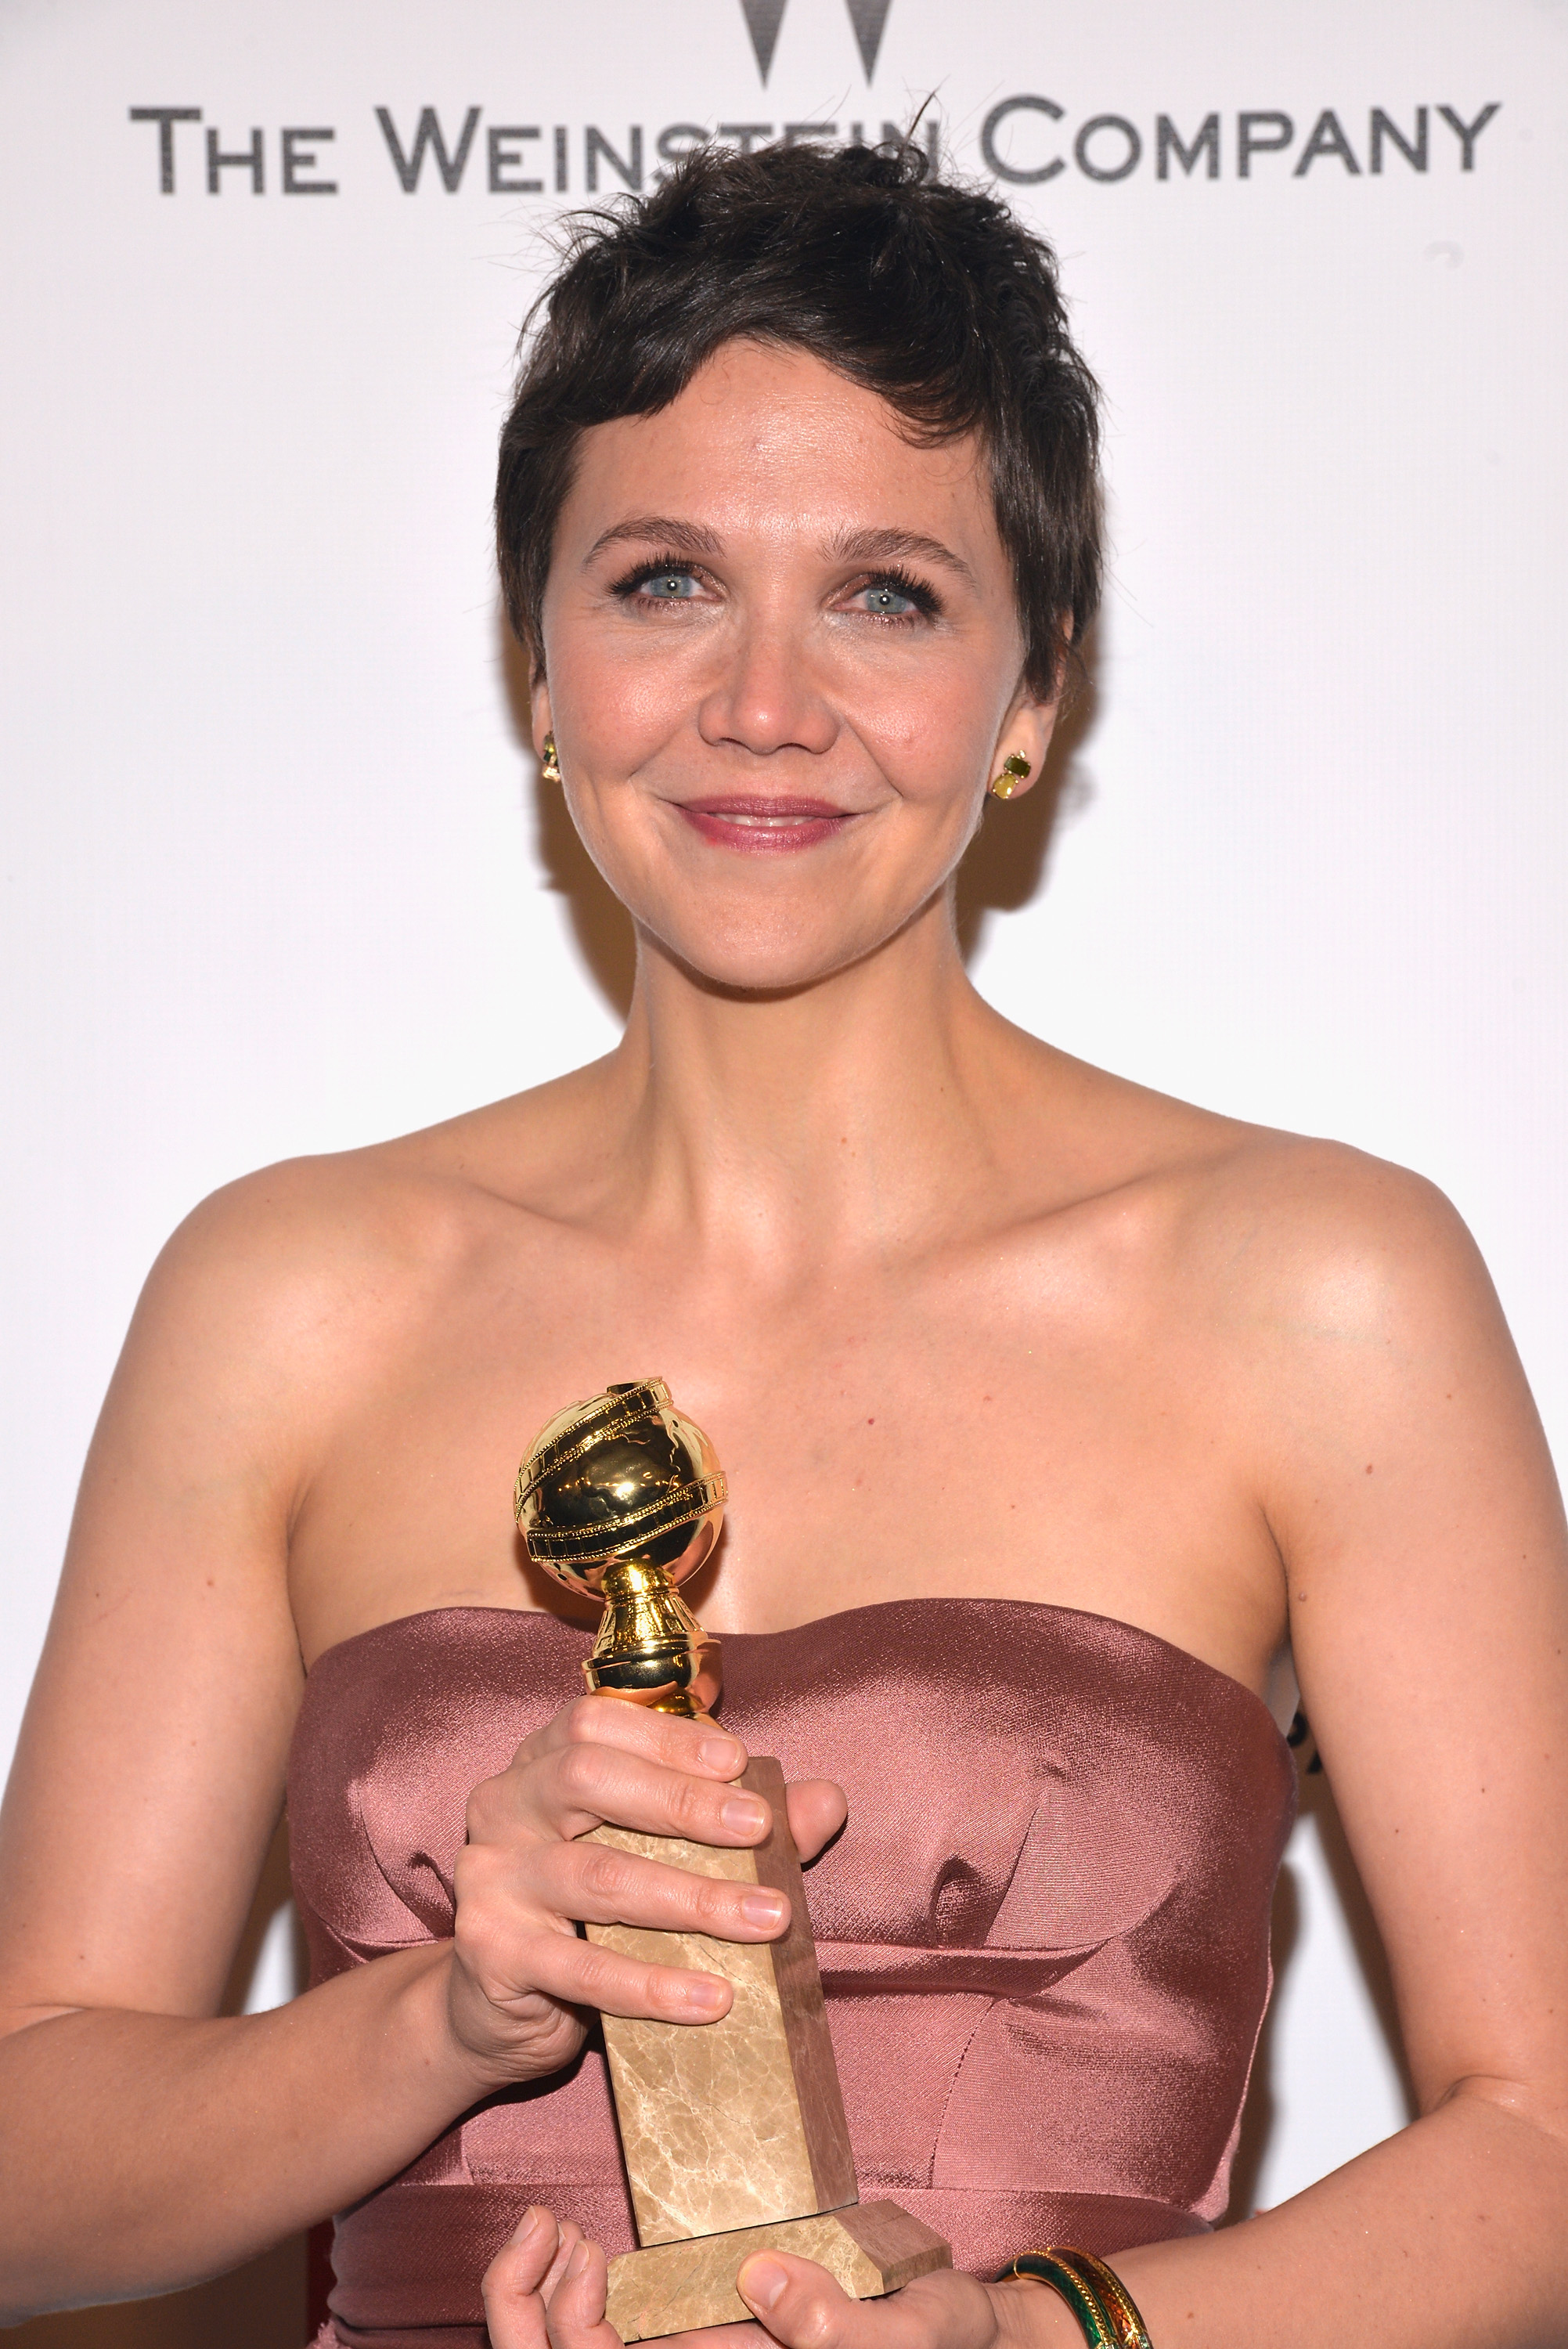 Maggie Gyllenhaal celebrates her win at the 2015 Weinstein Company and Netflix Golden Globes After Party on Jan. 11, 2015 in Beverly Hills, Calif.